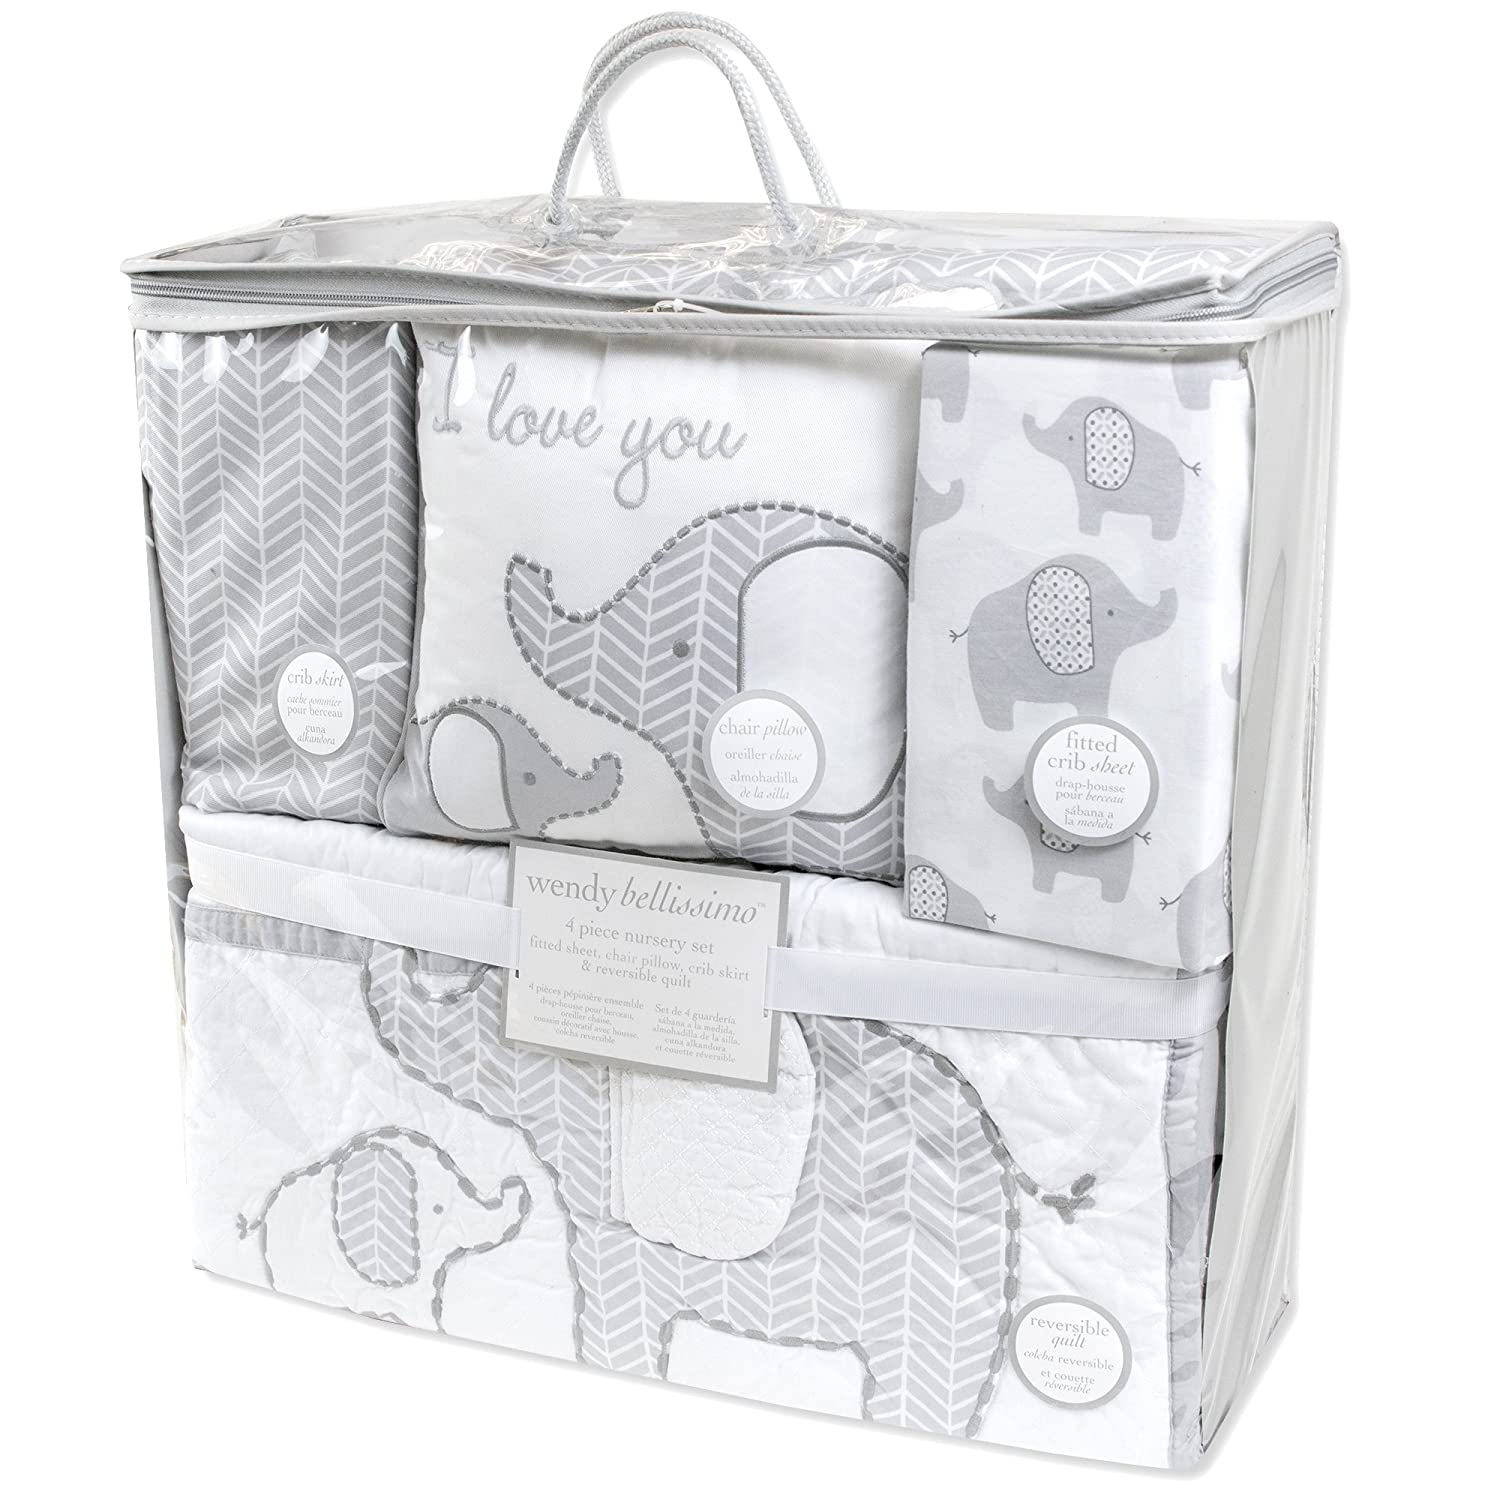 Amazon.com : Wendy Bellissimo 4pc Nursery Bedding Baby Crib Bedding Set - Elephant Crib bedding from the Elodie Collection in Grey and Pink : Baby